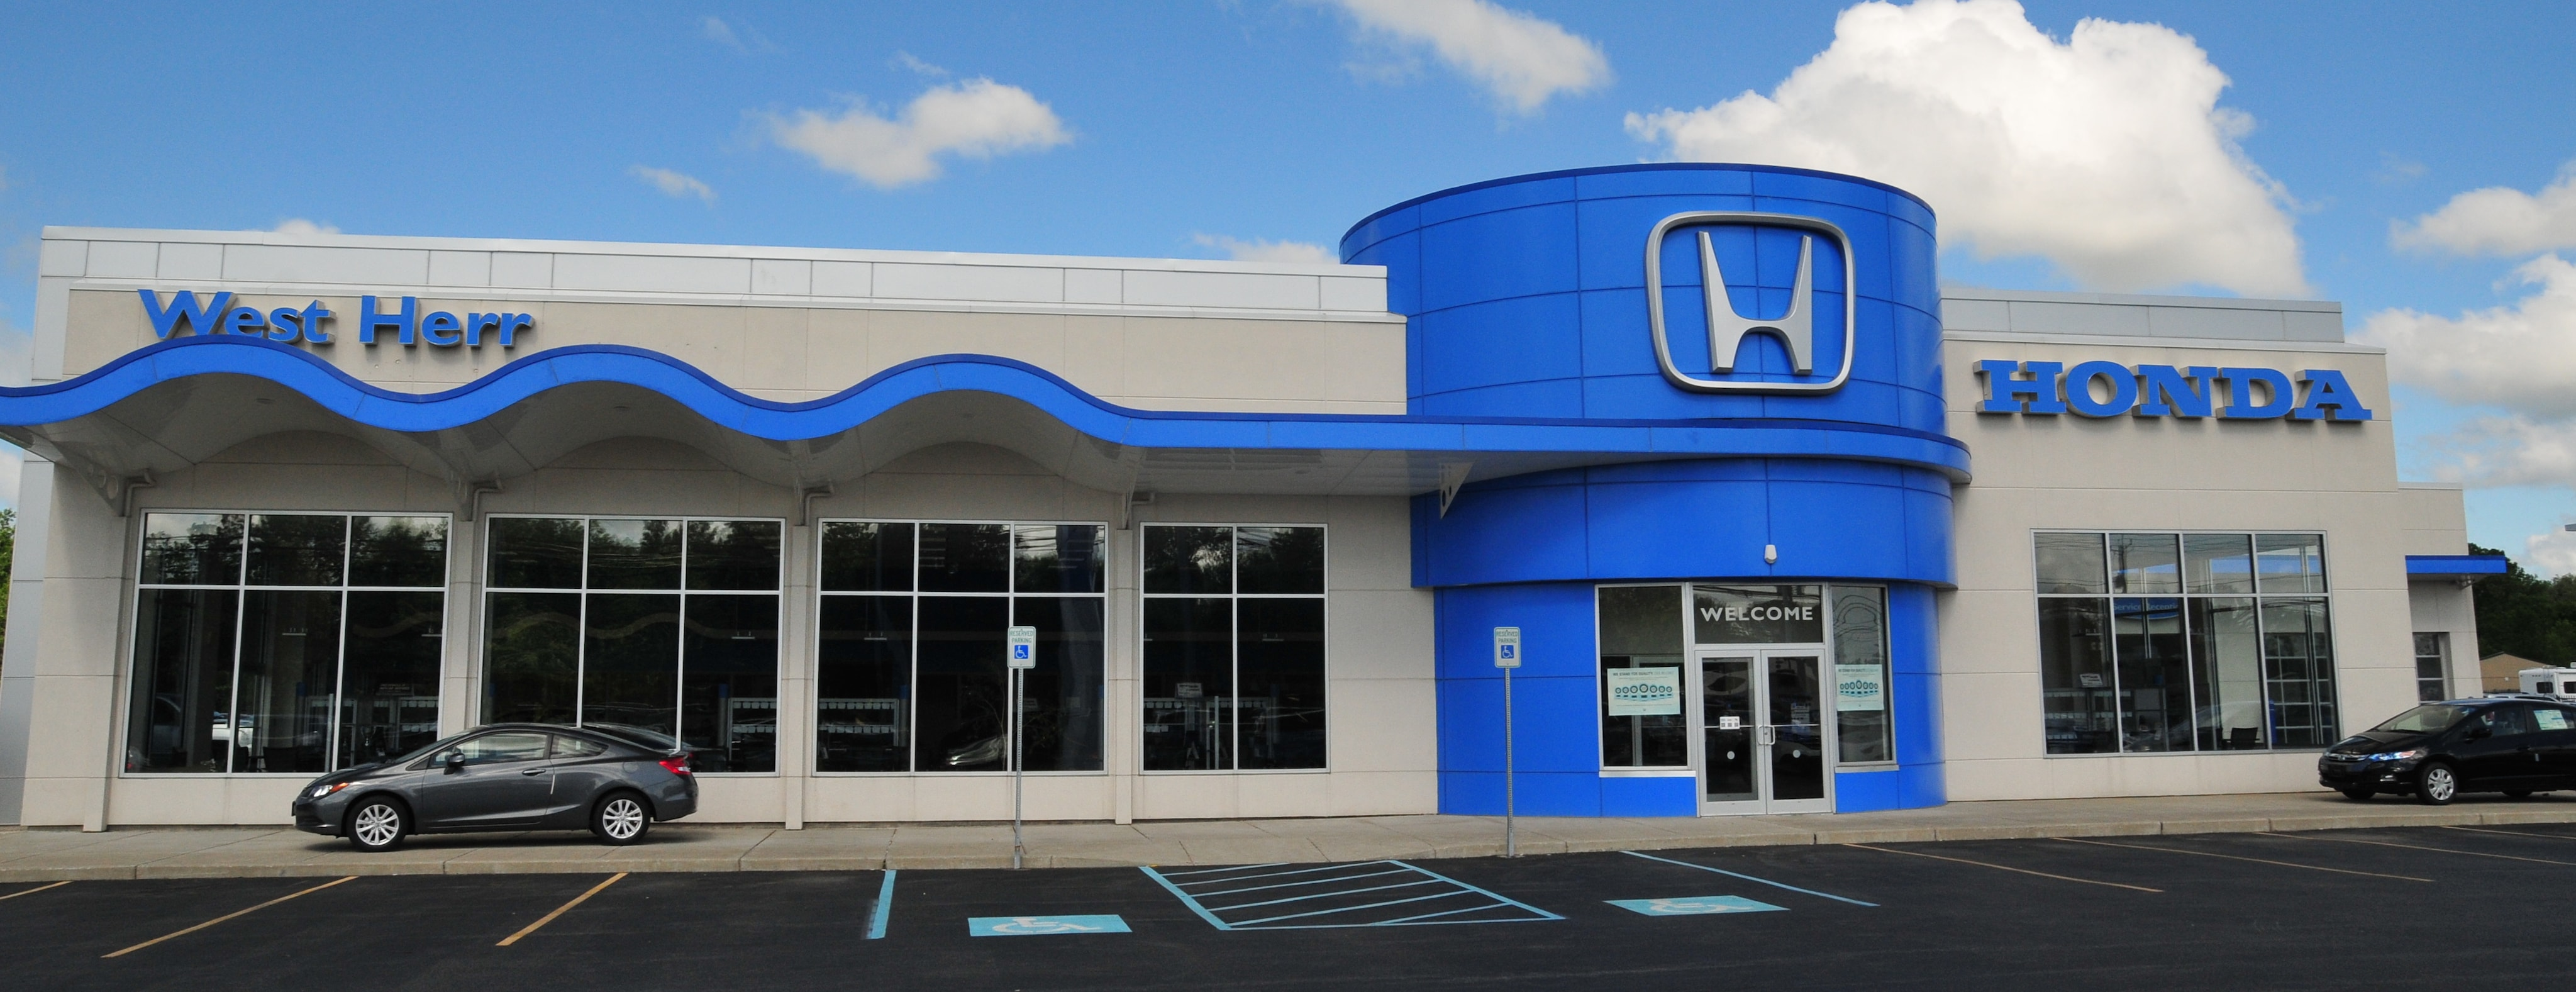 Honda Dealers Rochester Ny >> About Us West Herr Honda Serving Buffalo Amherst Rochester Ny